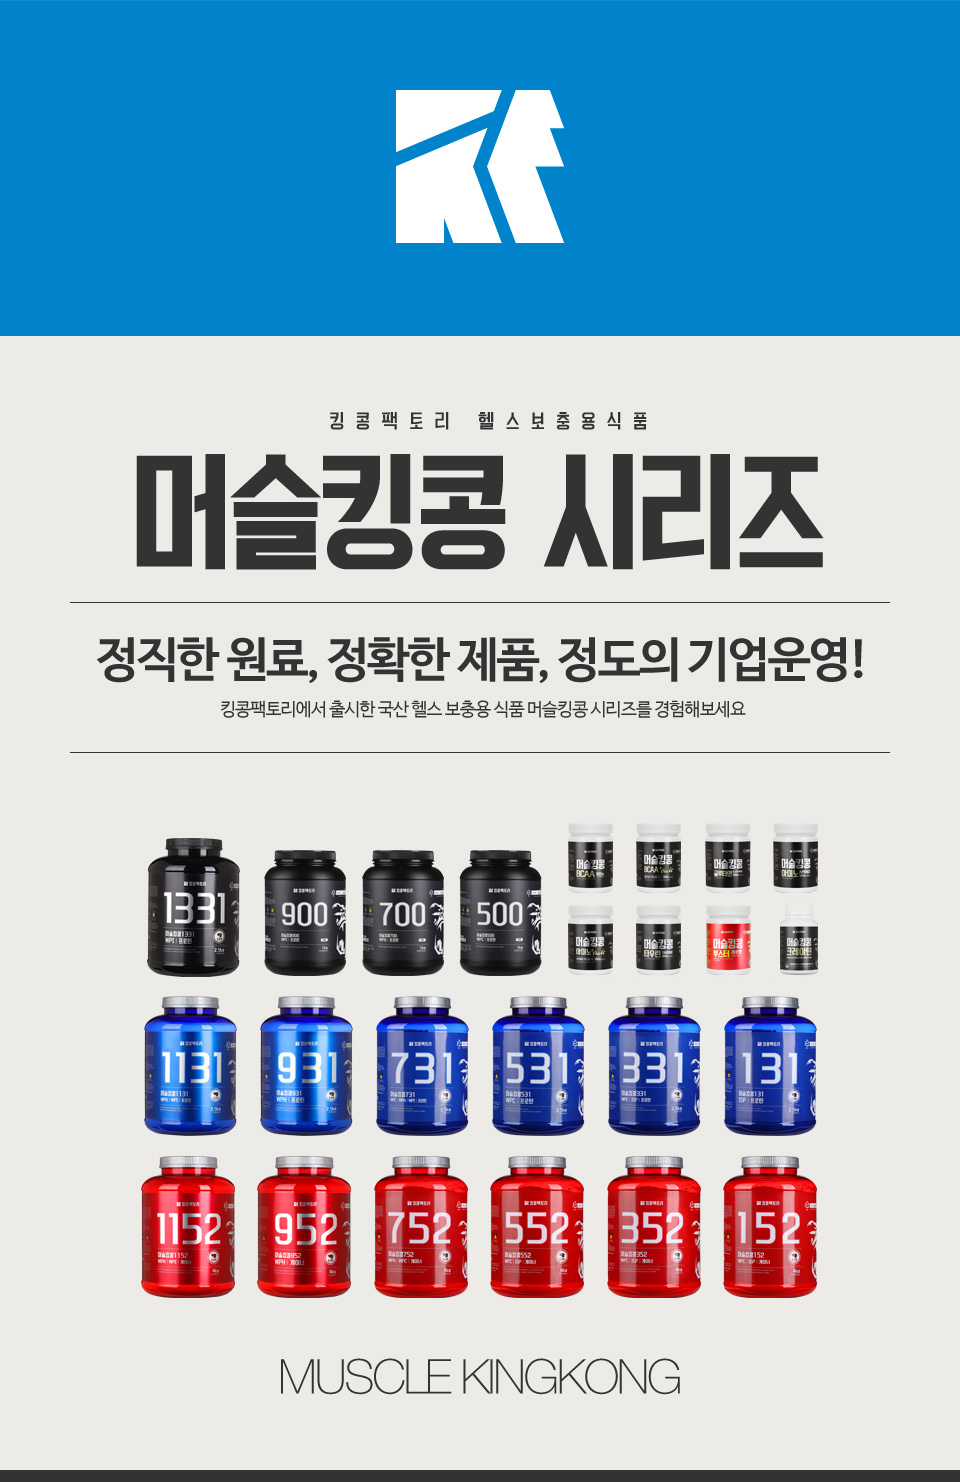 [ etc ] Musclekingkong 1131 (Chocolate Flavor) 2.5Kg Protein Supplement/Health Supplement/Shaker Included